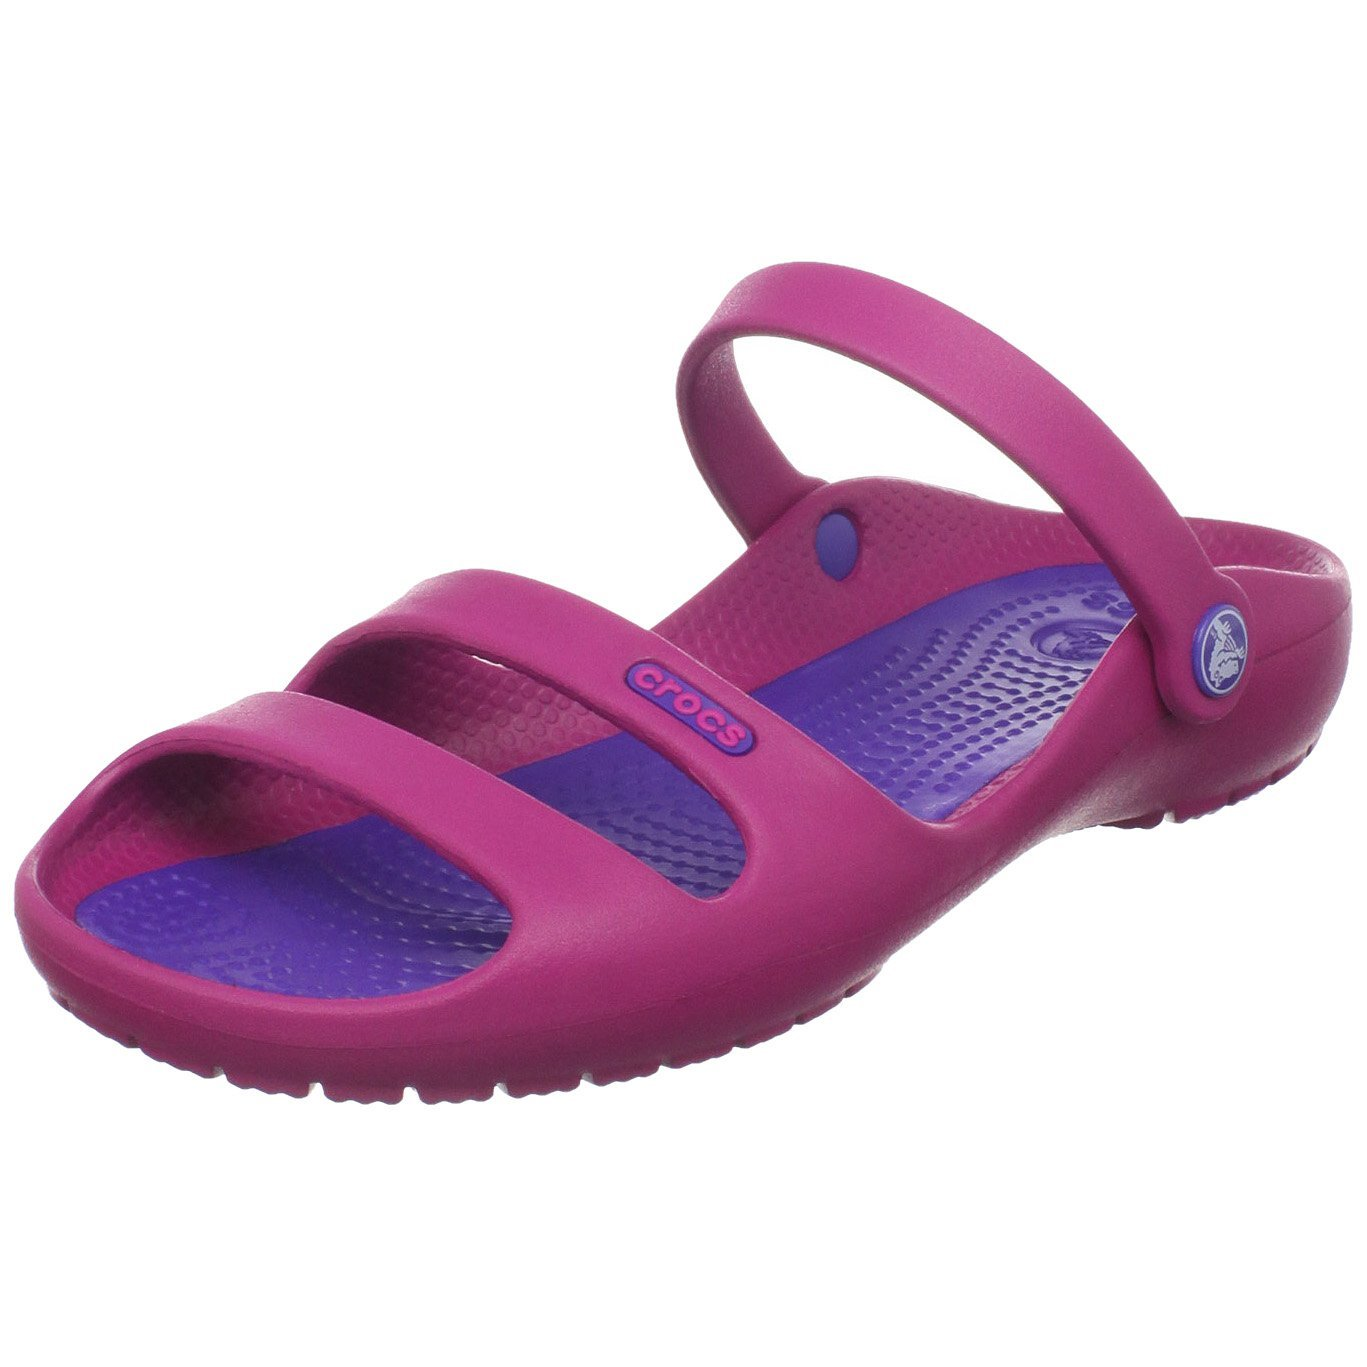 Model Crocs Crocband Sandals In CharcoalOcean For Women  Chachafab